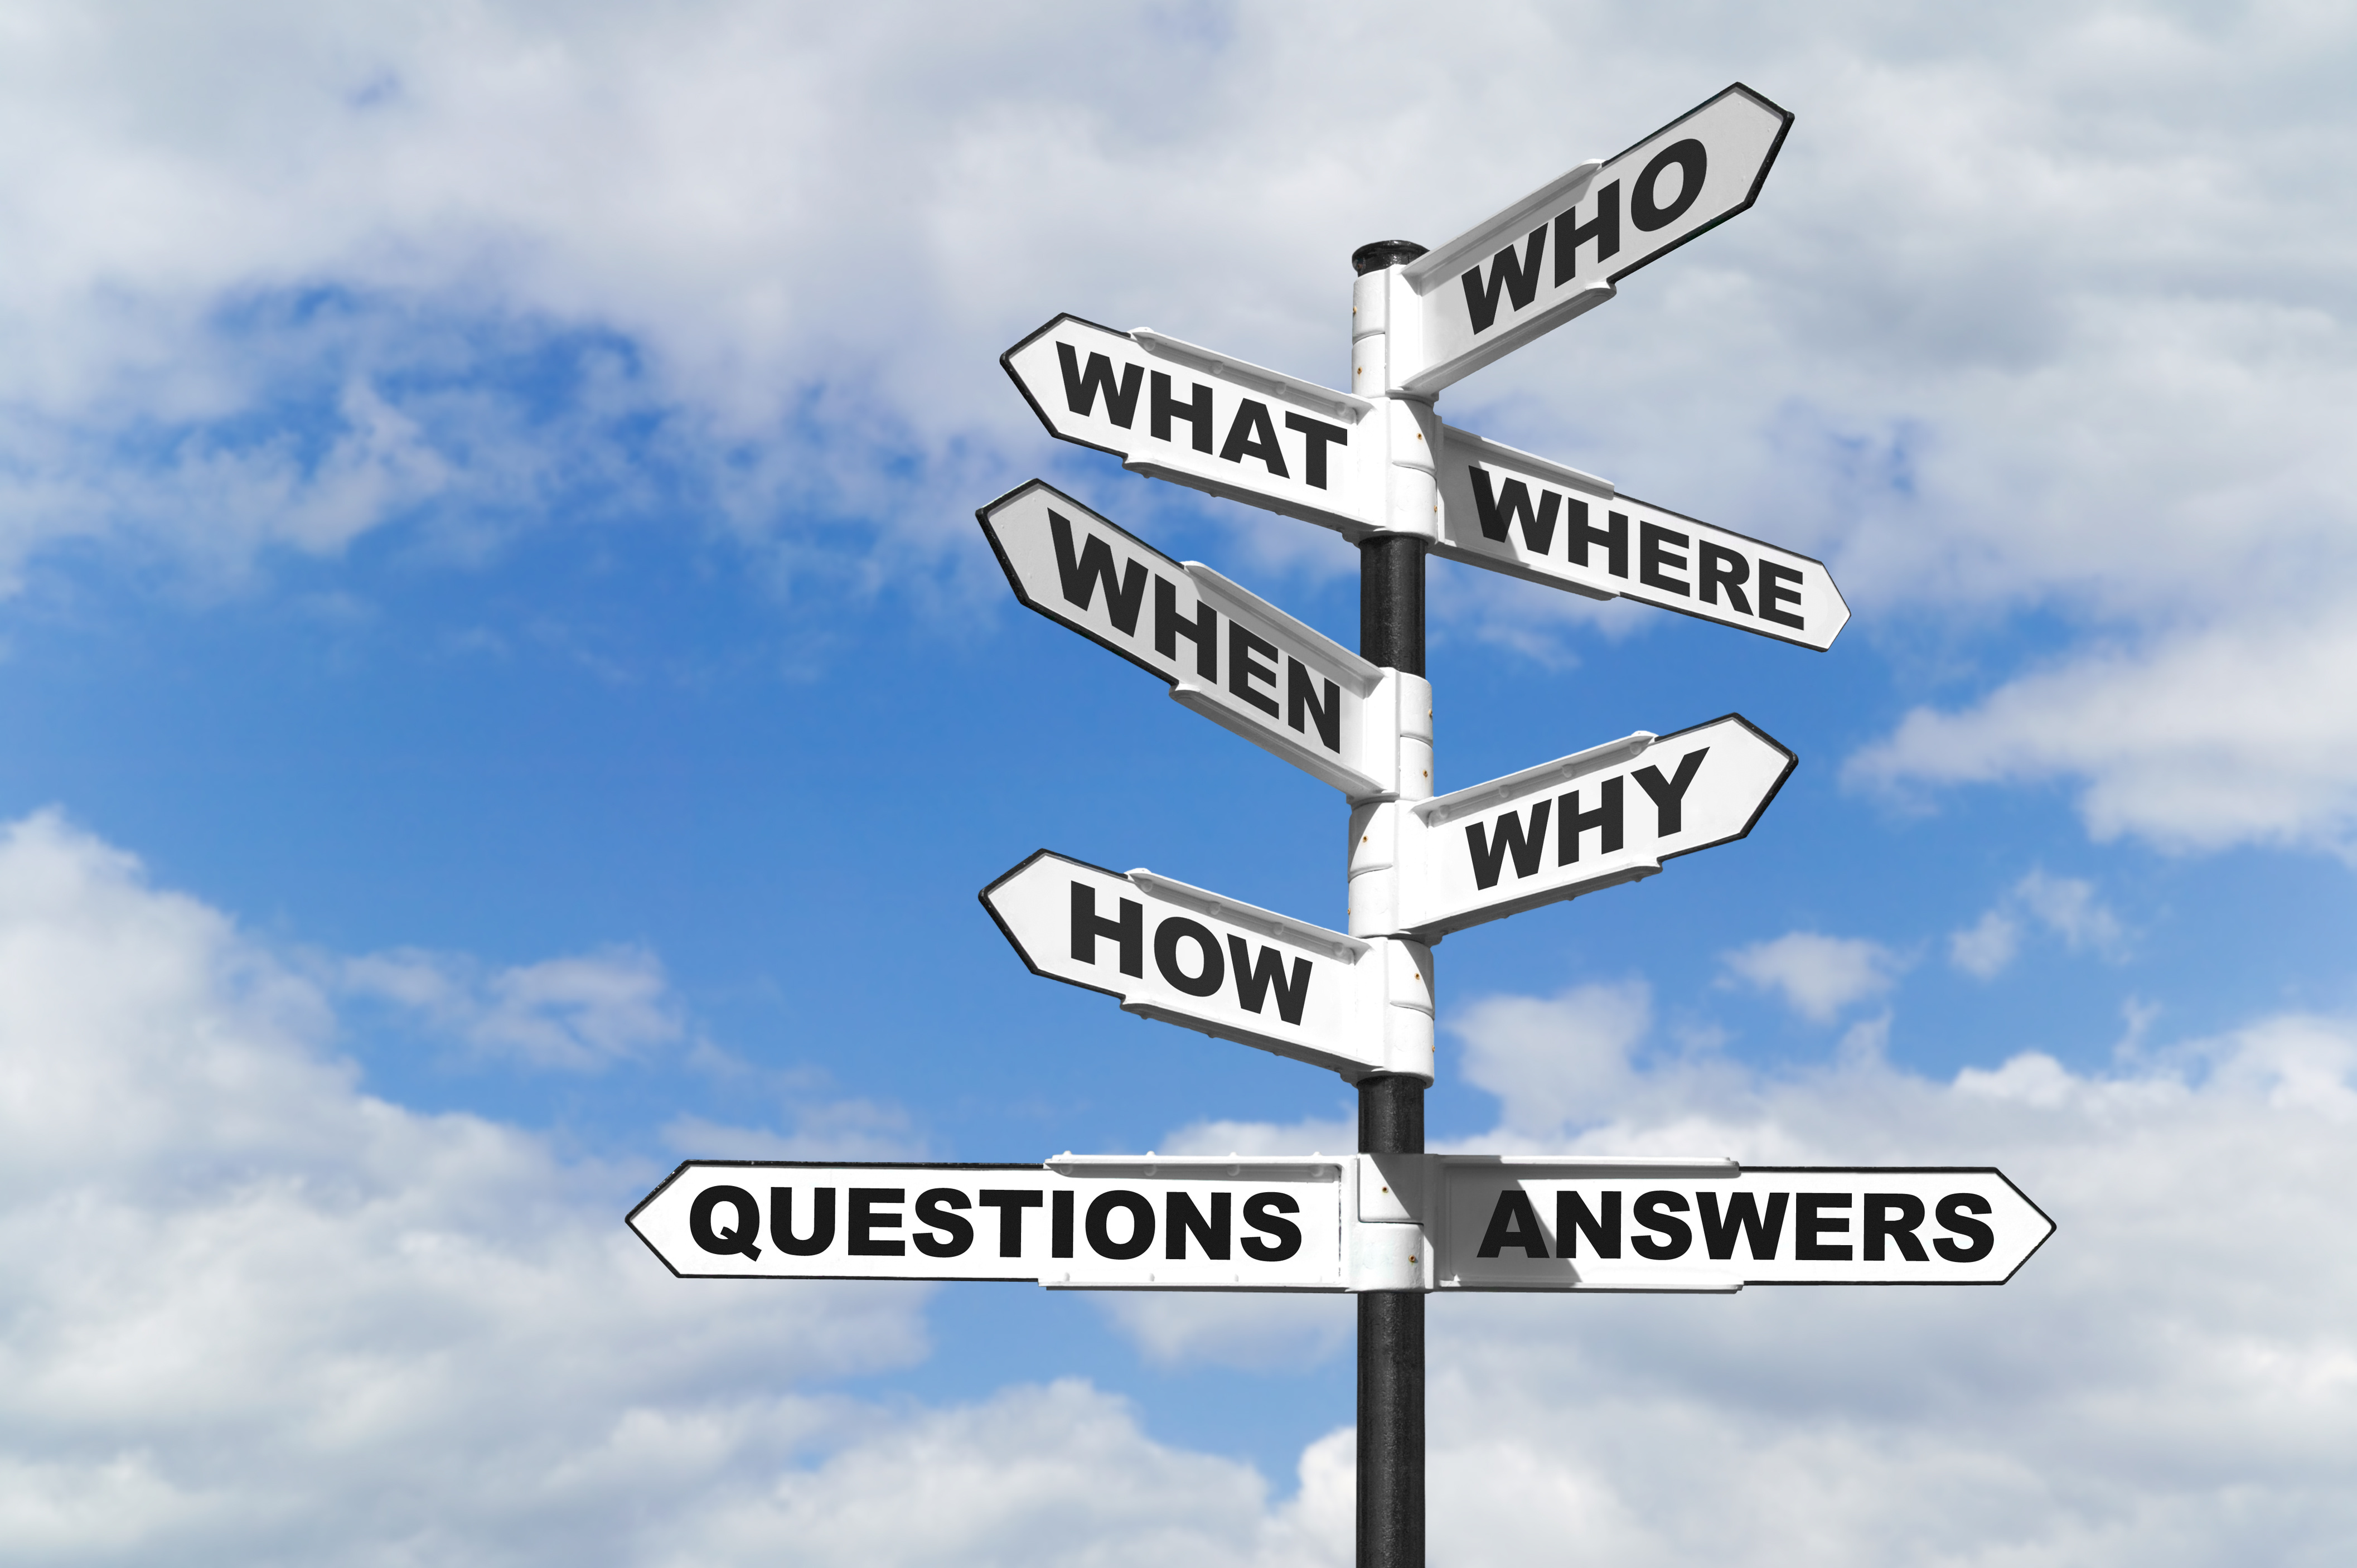 questions-meeting-wisembly